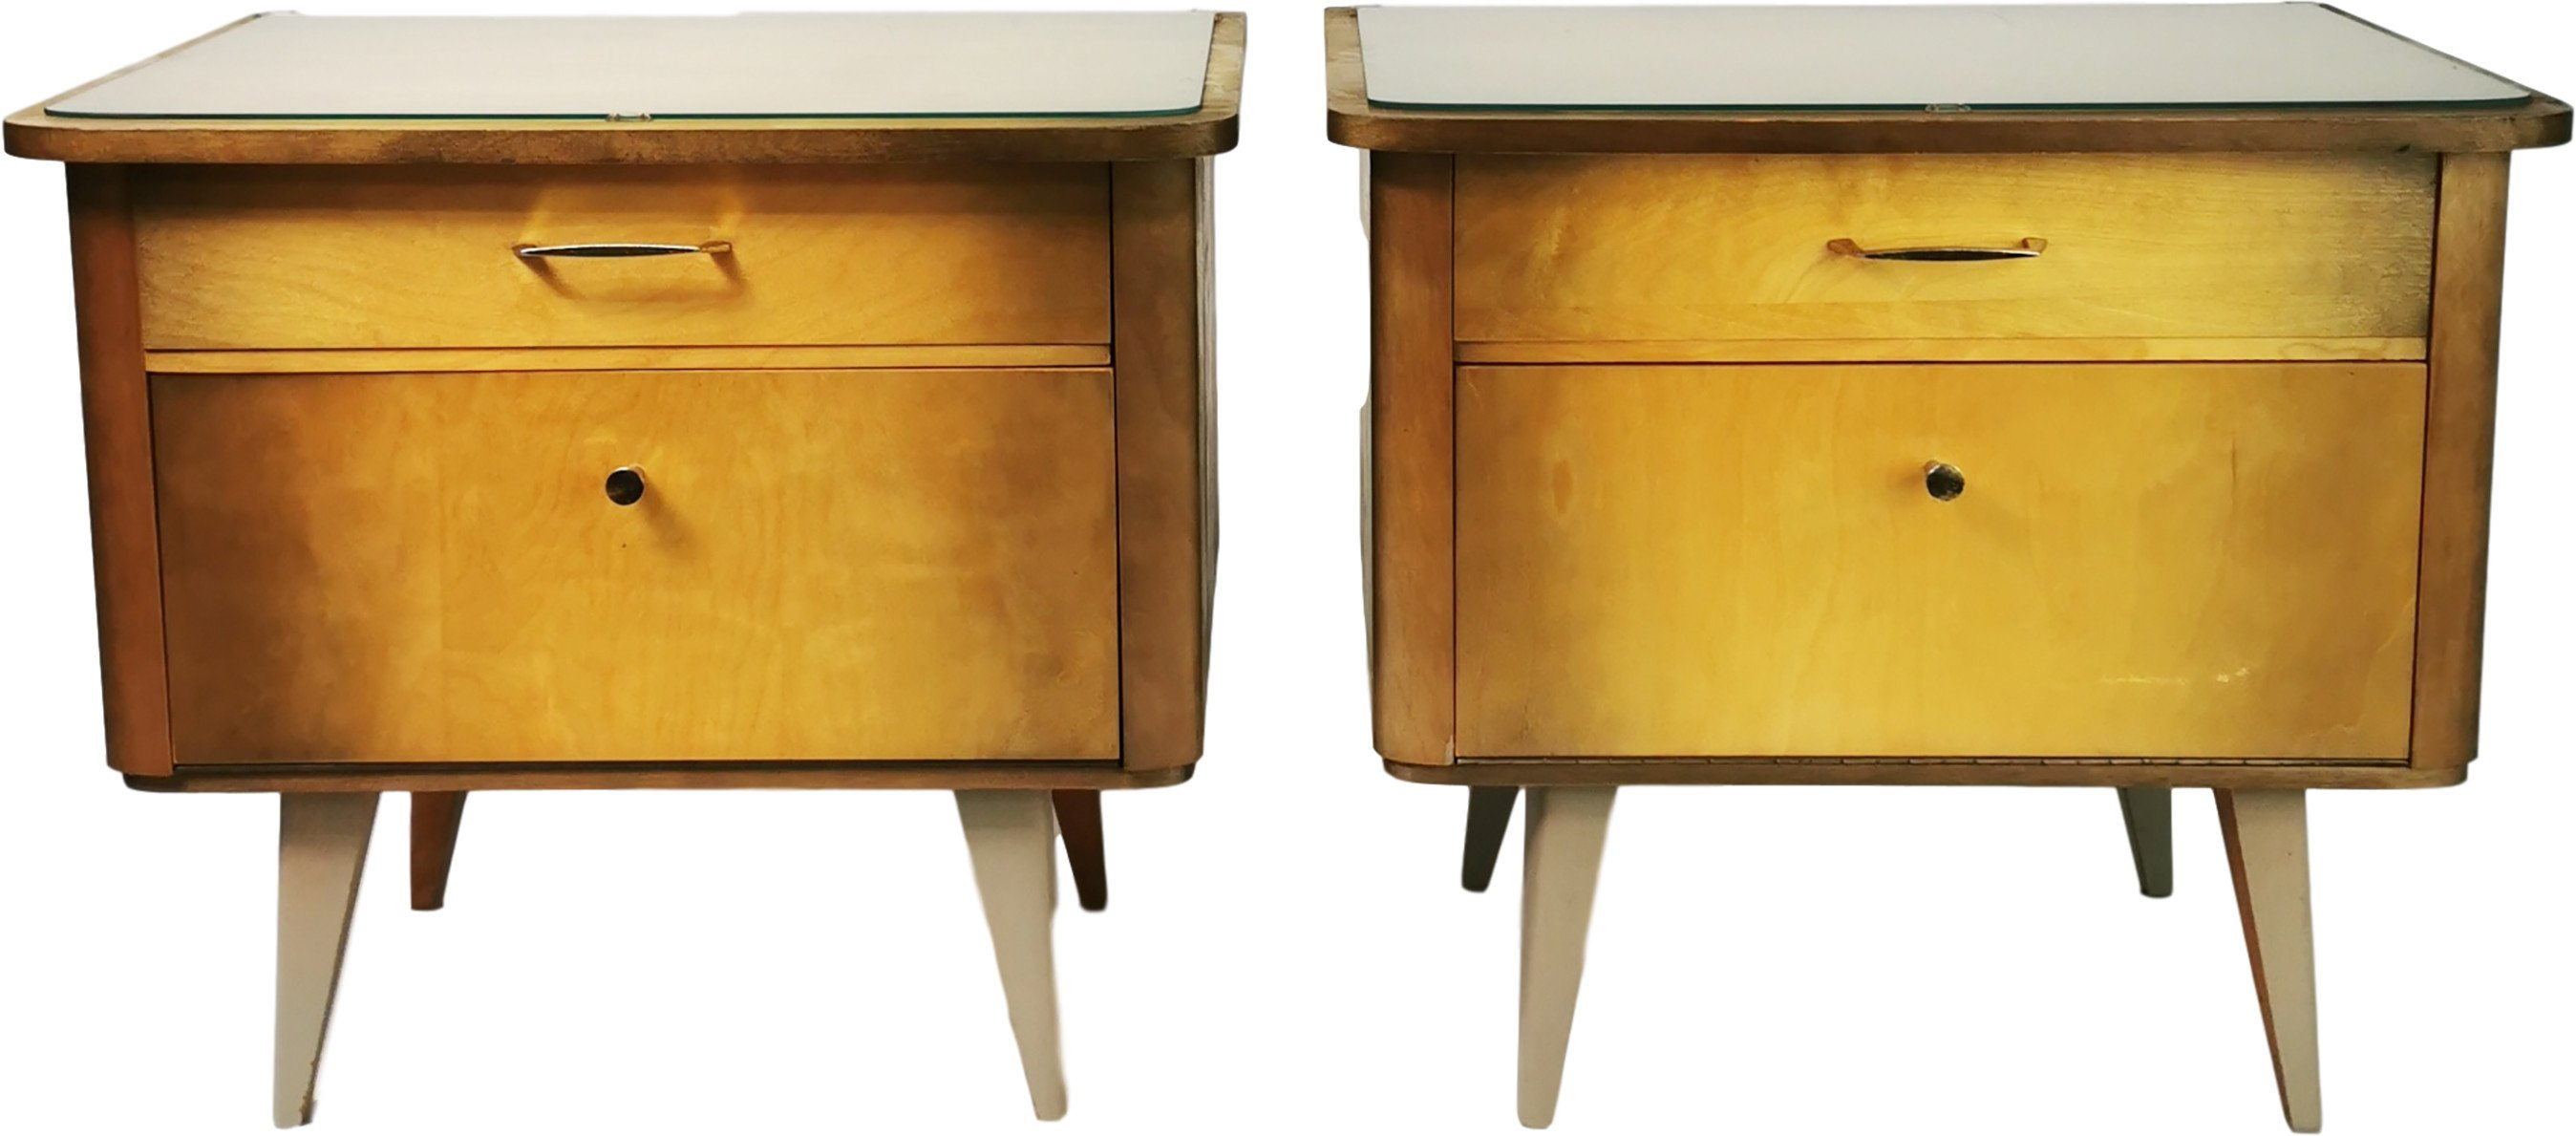 Pair of Nightstands, Germany, 1960s - 500347 - photo